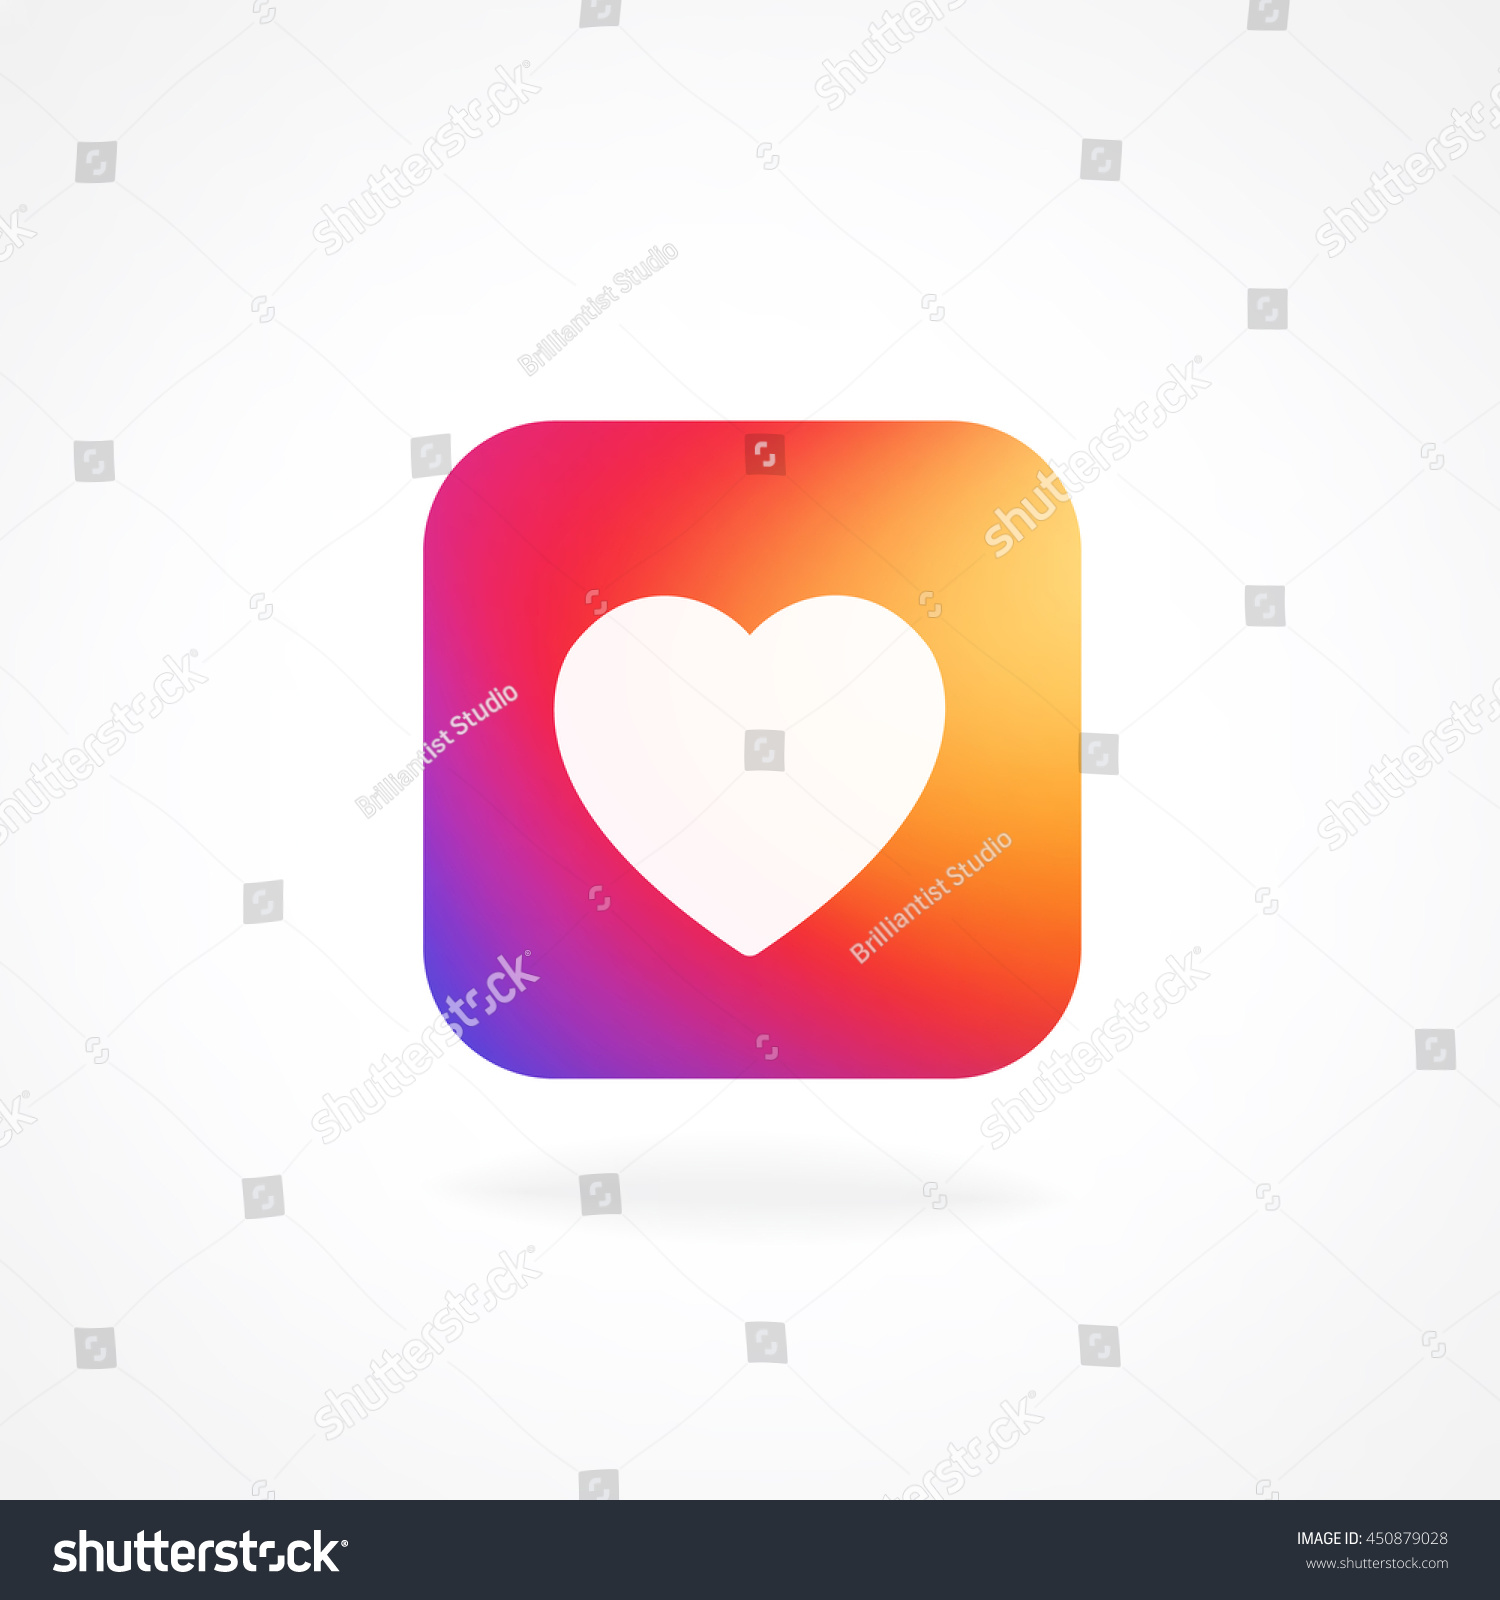 heart symbol app icon smooth color stock vector 450879028